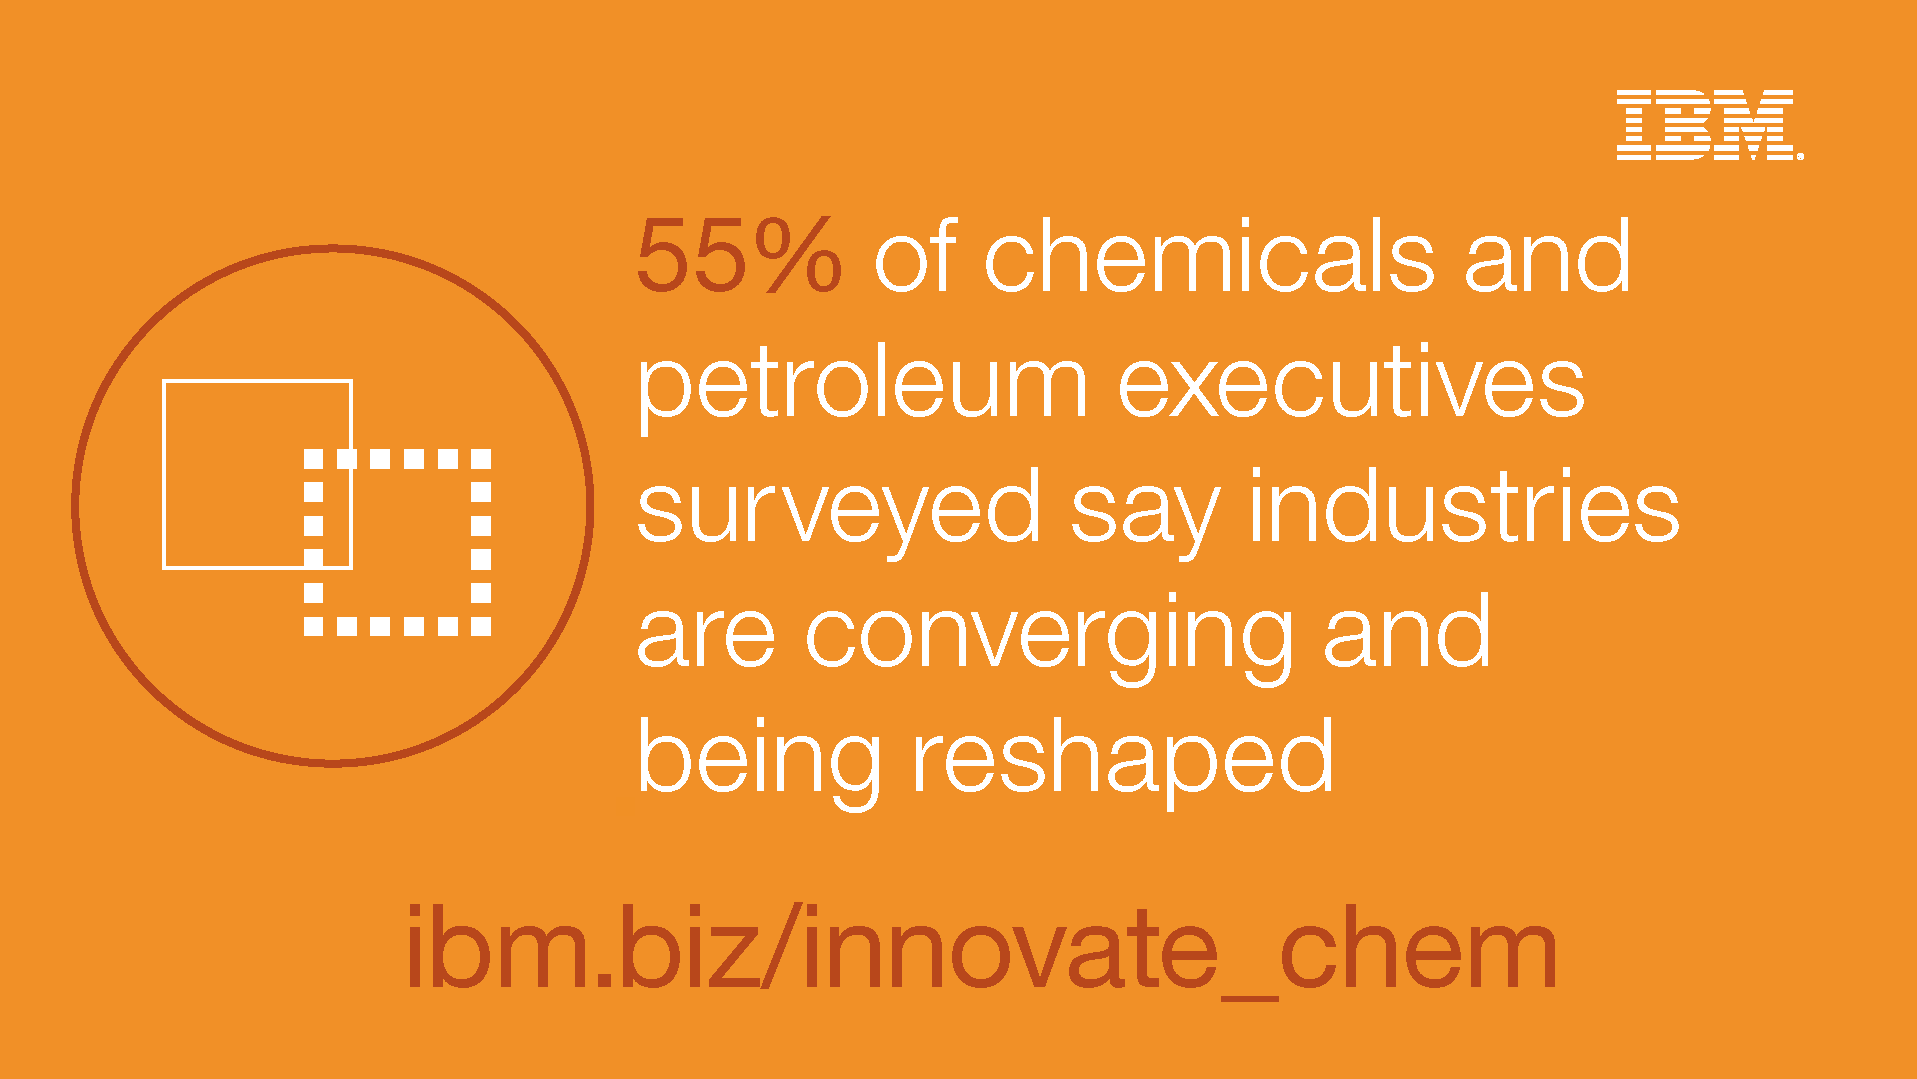 55% of chemicals and petroleum executives surveyed say industries are converging and being reshaped